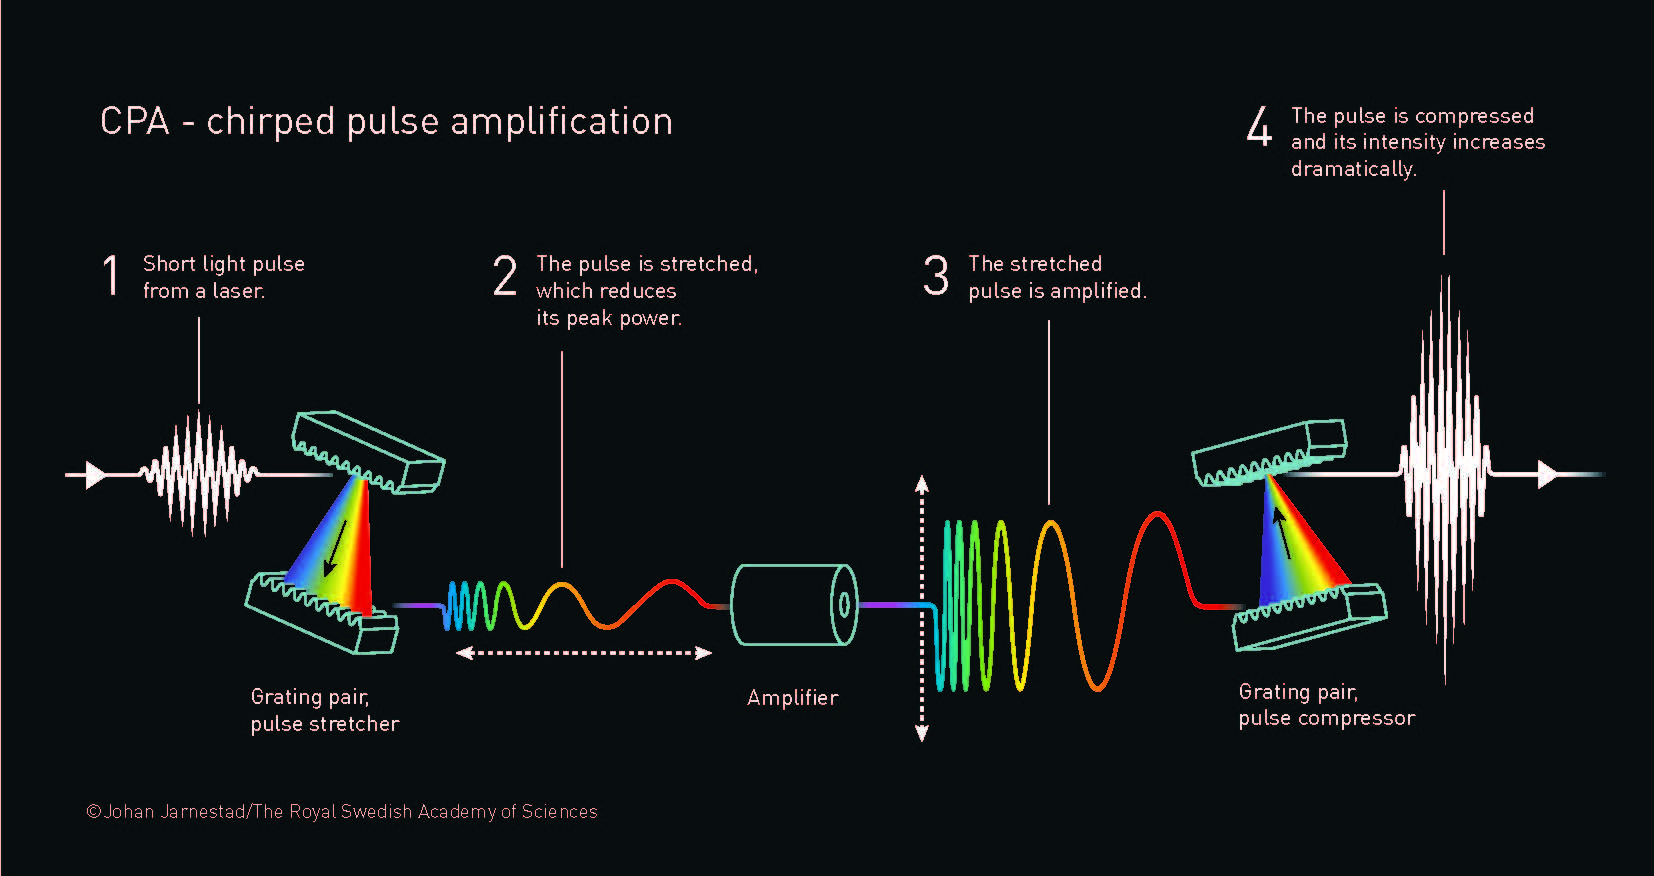 A visual illustration of chirped pulse amplification